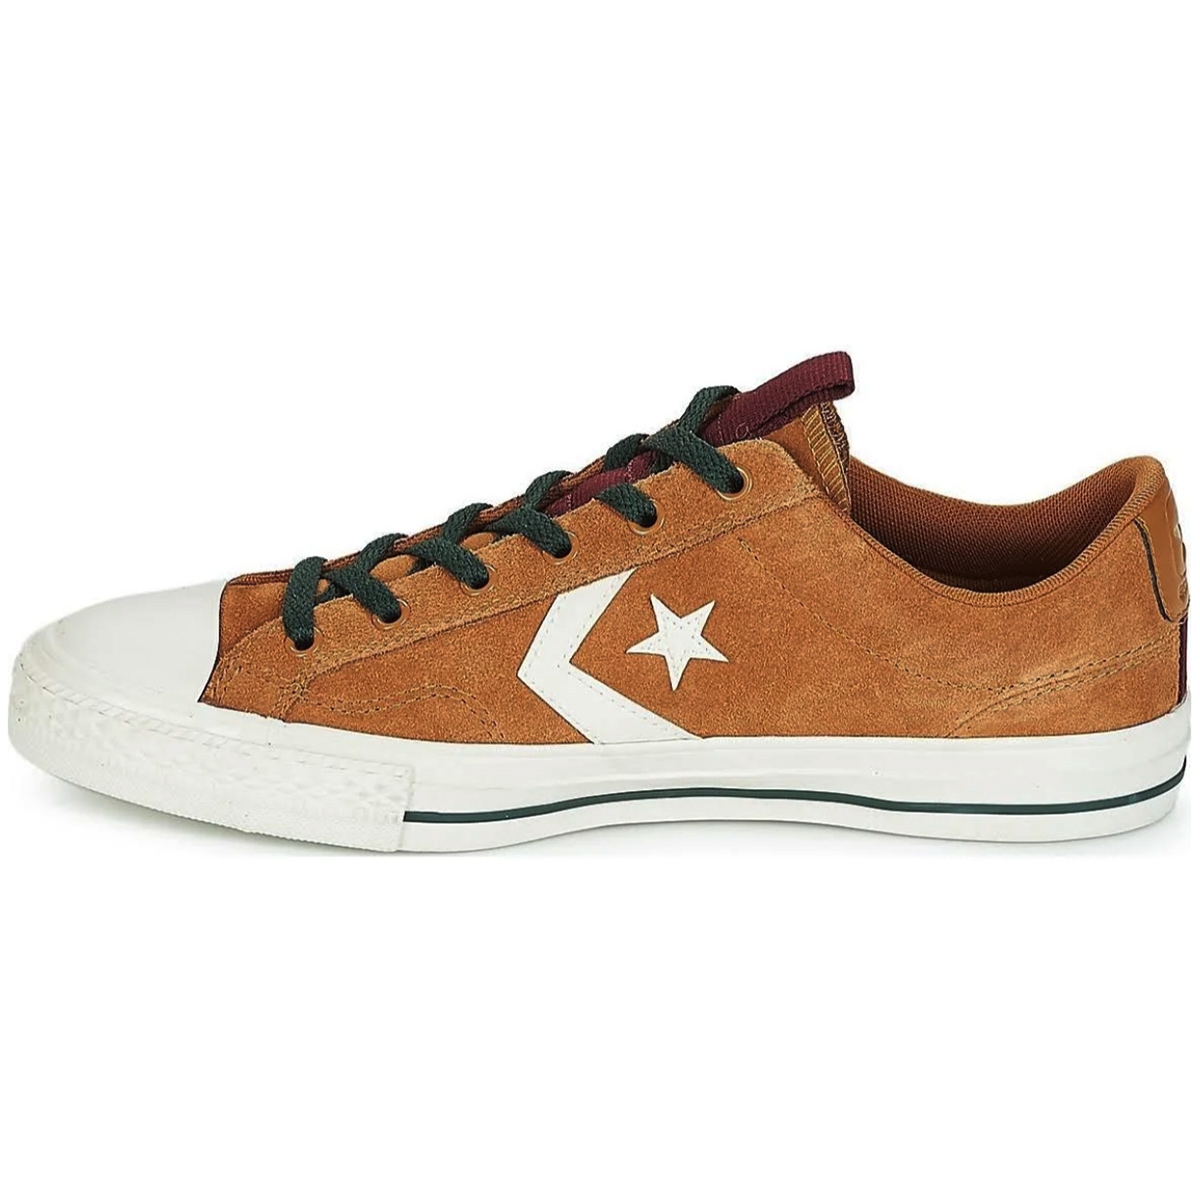 new style 481a6 873f7 Converse Star Player Ox Sneaker low burnt caramel